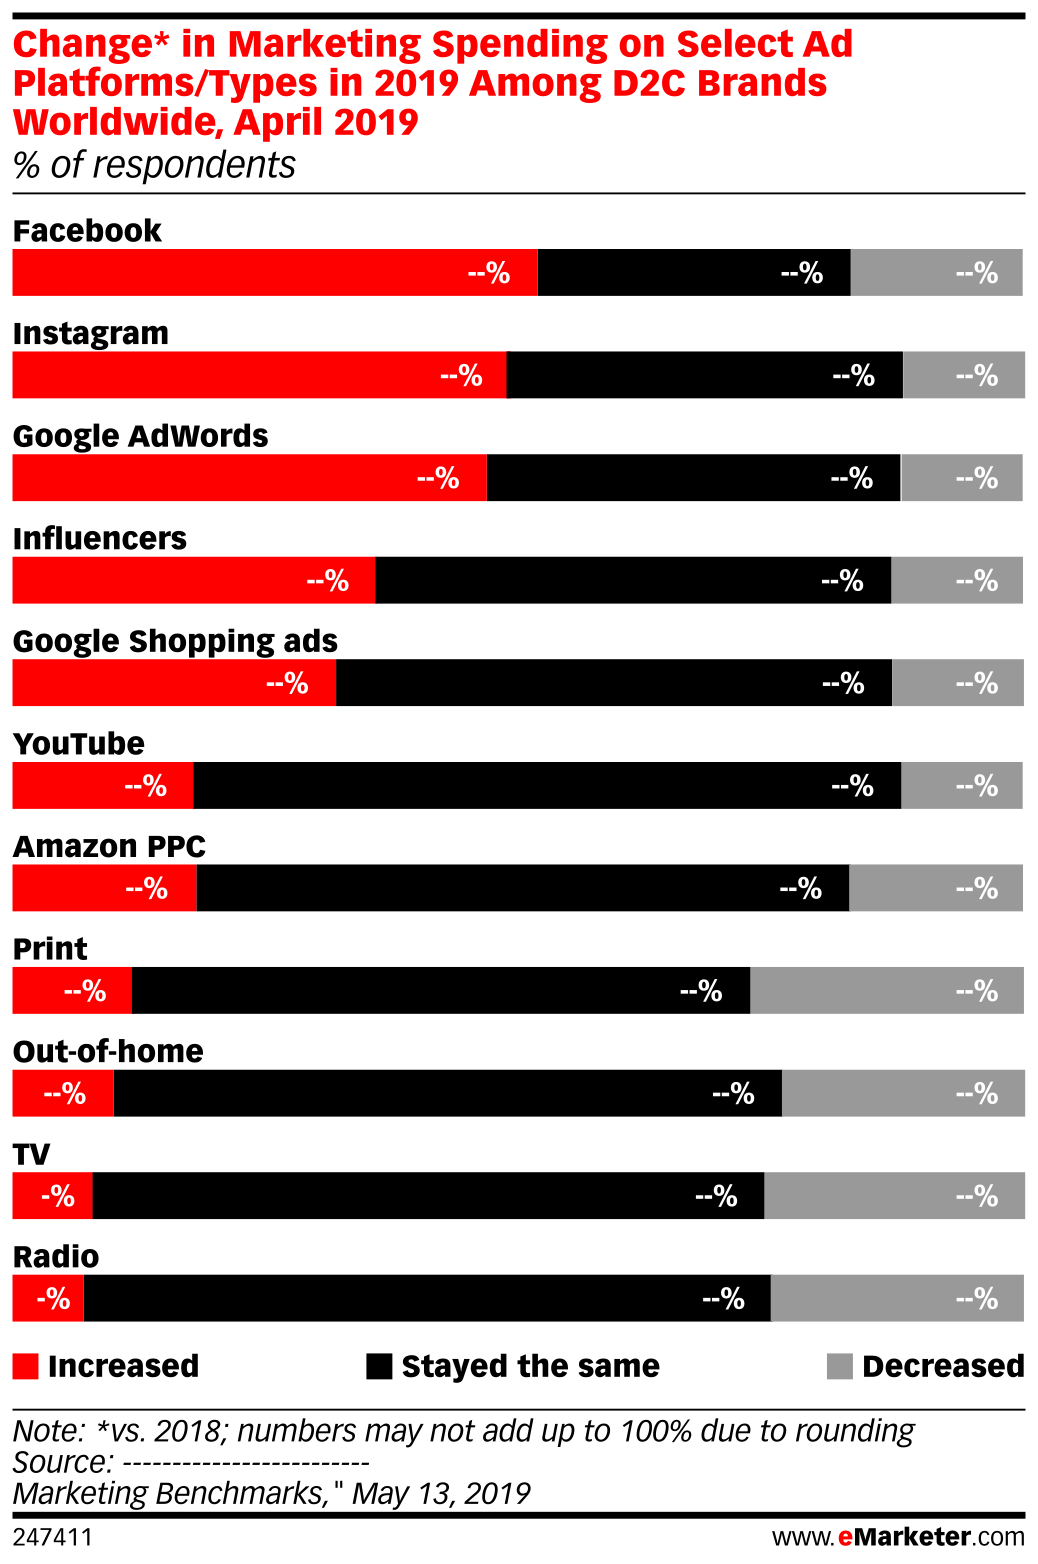 Change* in Marketing Spending on Select Ad Platforms/Types in 2019 Among D2C Brands Worldwide, April 2019 (% of respondents)